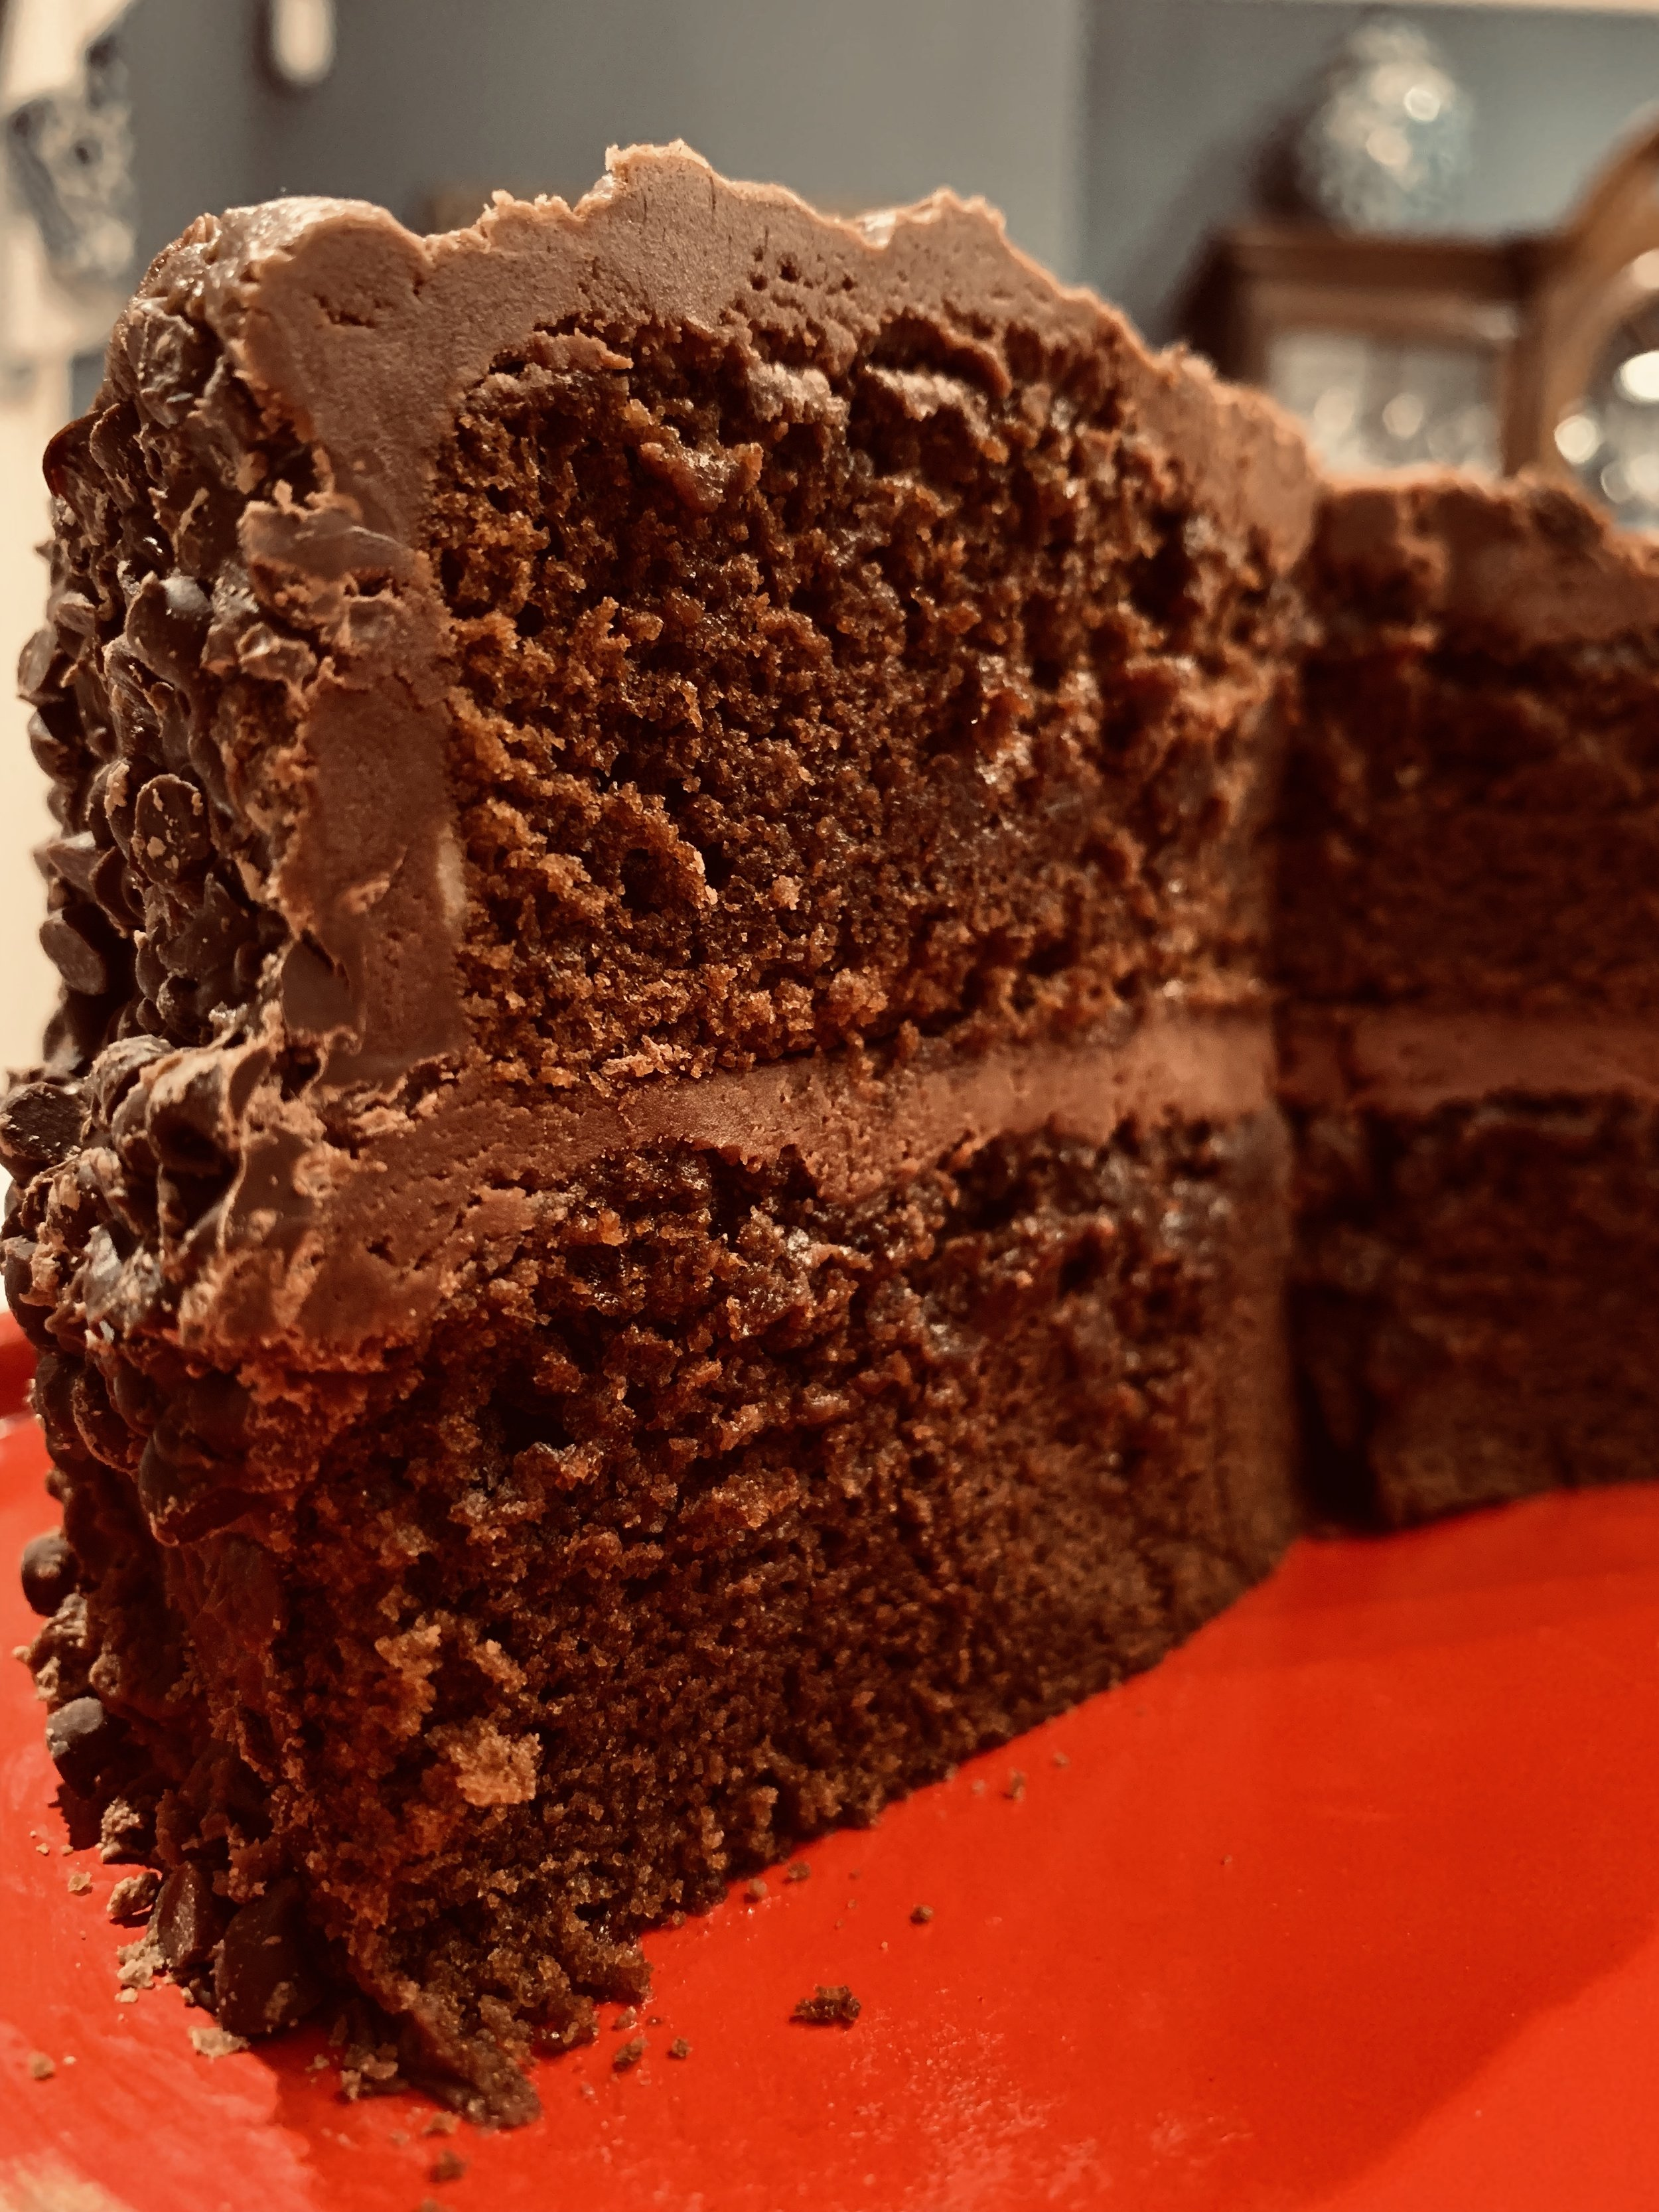 - Paul's Chocolate Fudge CakeAmped Up WithOld Fashioned Boiled Chocolate Fudge Frosting and Mini Chocolate Chips